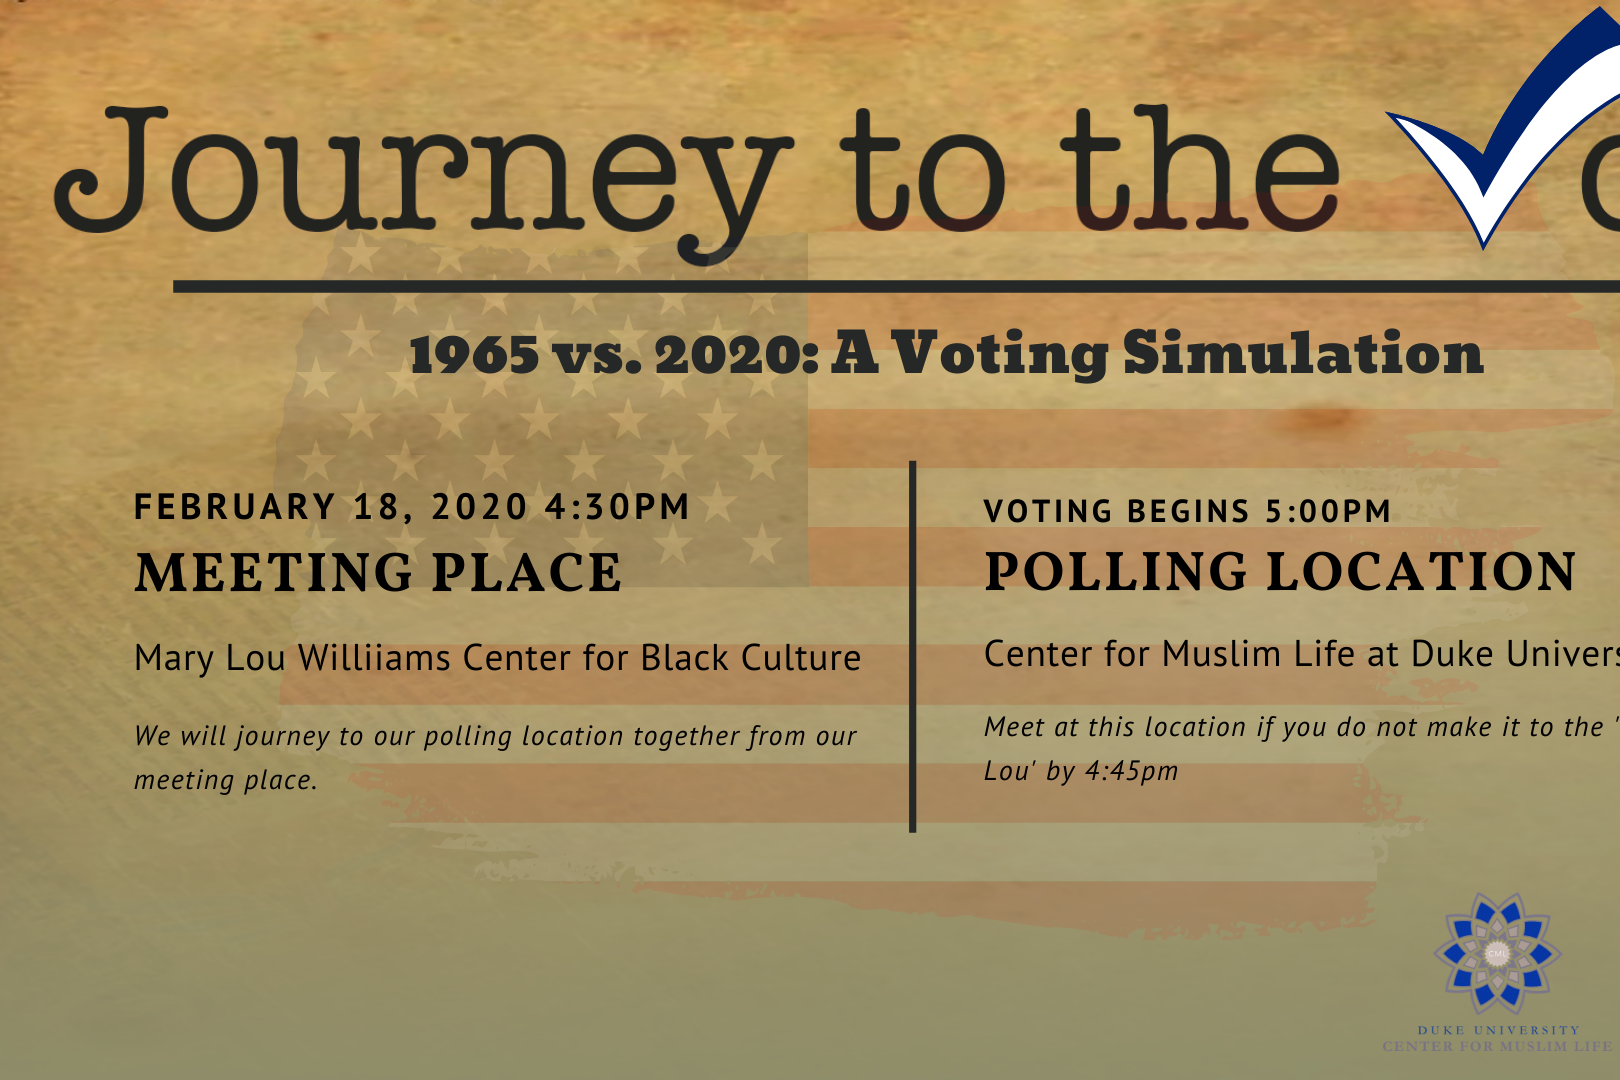 Journey to the Vote: 1965 vs 2020 voter simulation